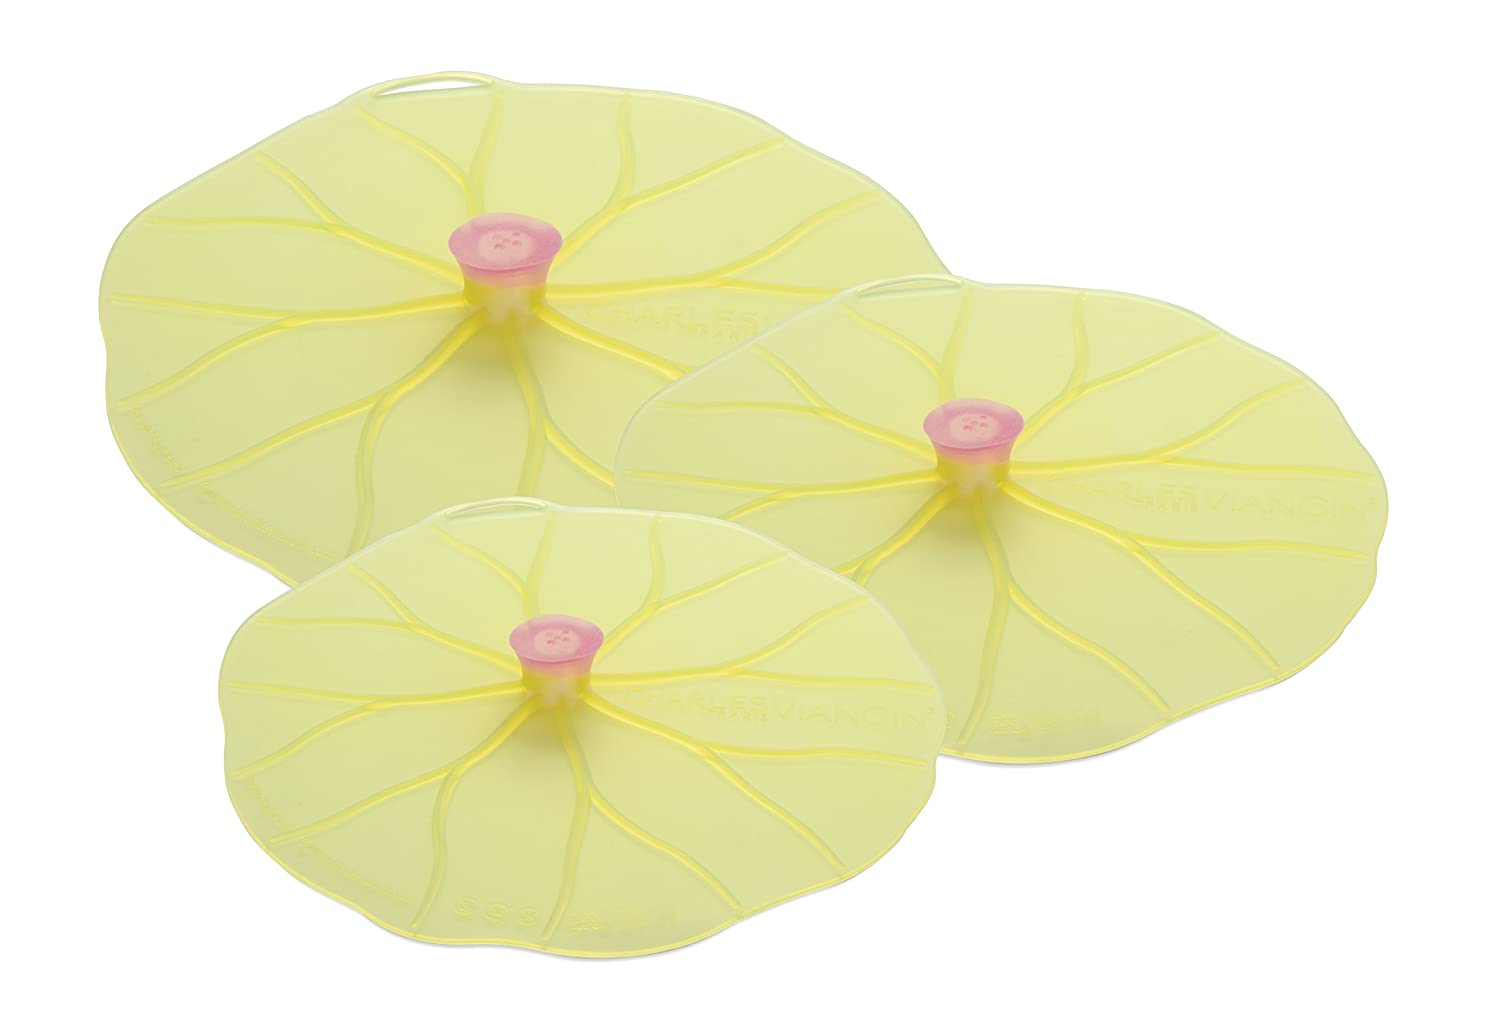 Charles Viancin Lilypad Lid Set of 3 - Large, Medium, Med/Small AGS10993